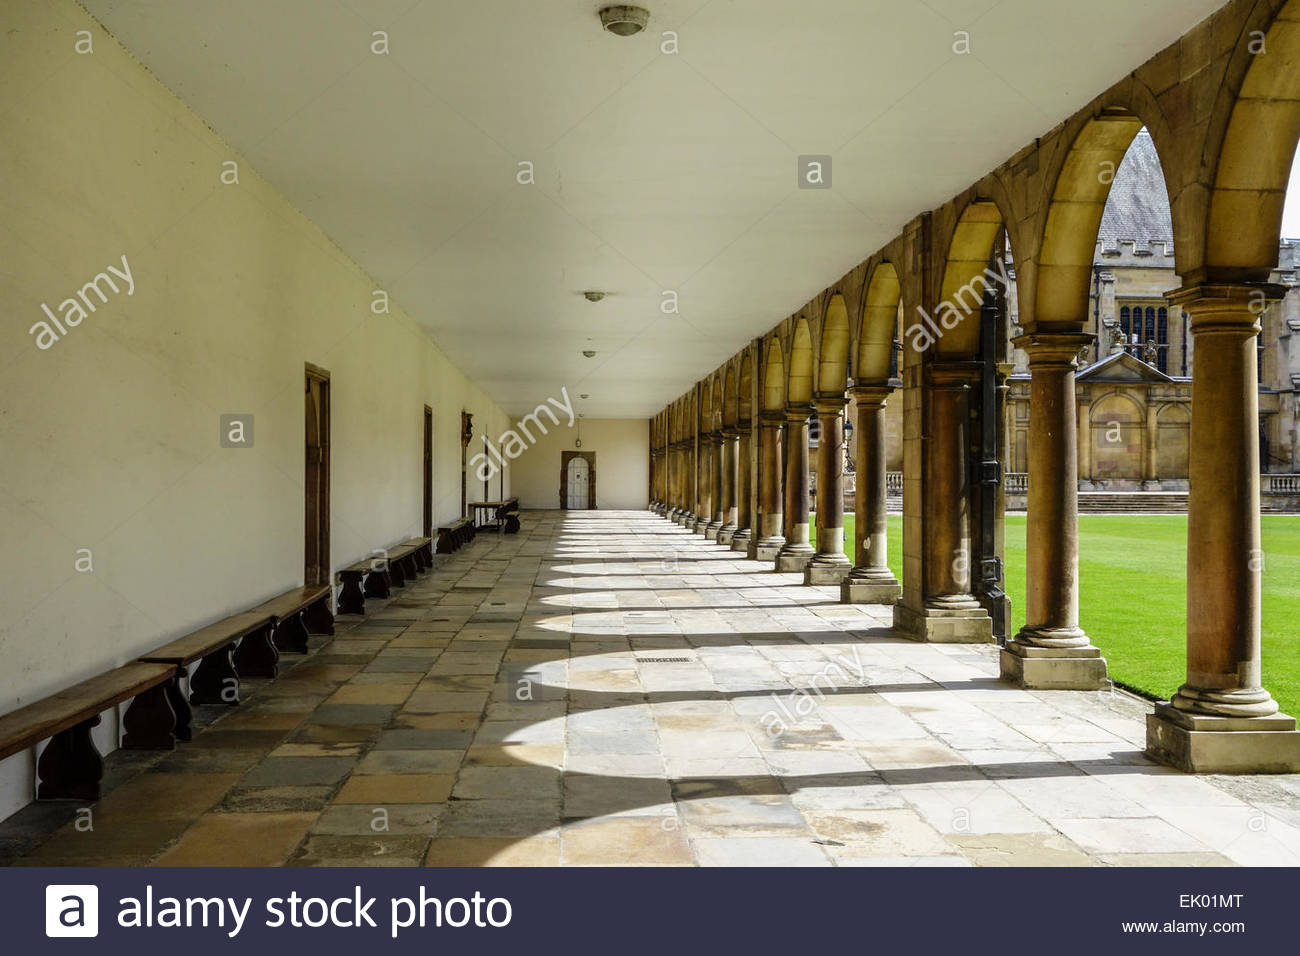 Cloisters in the Third Court at St John's College Cambridge - Stock Image